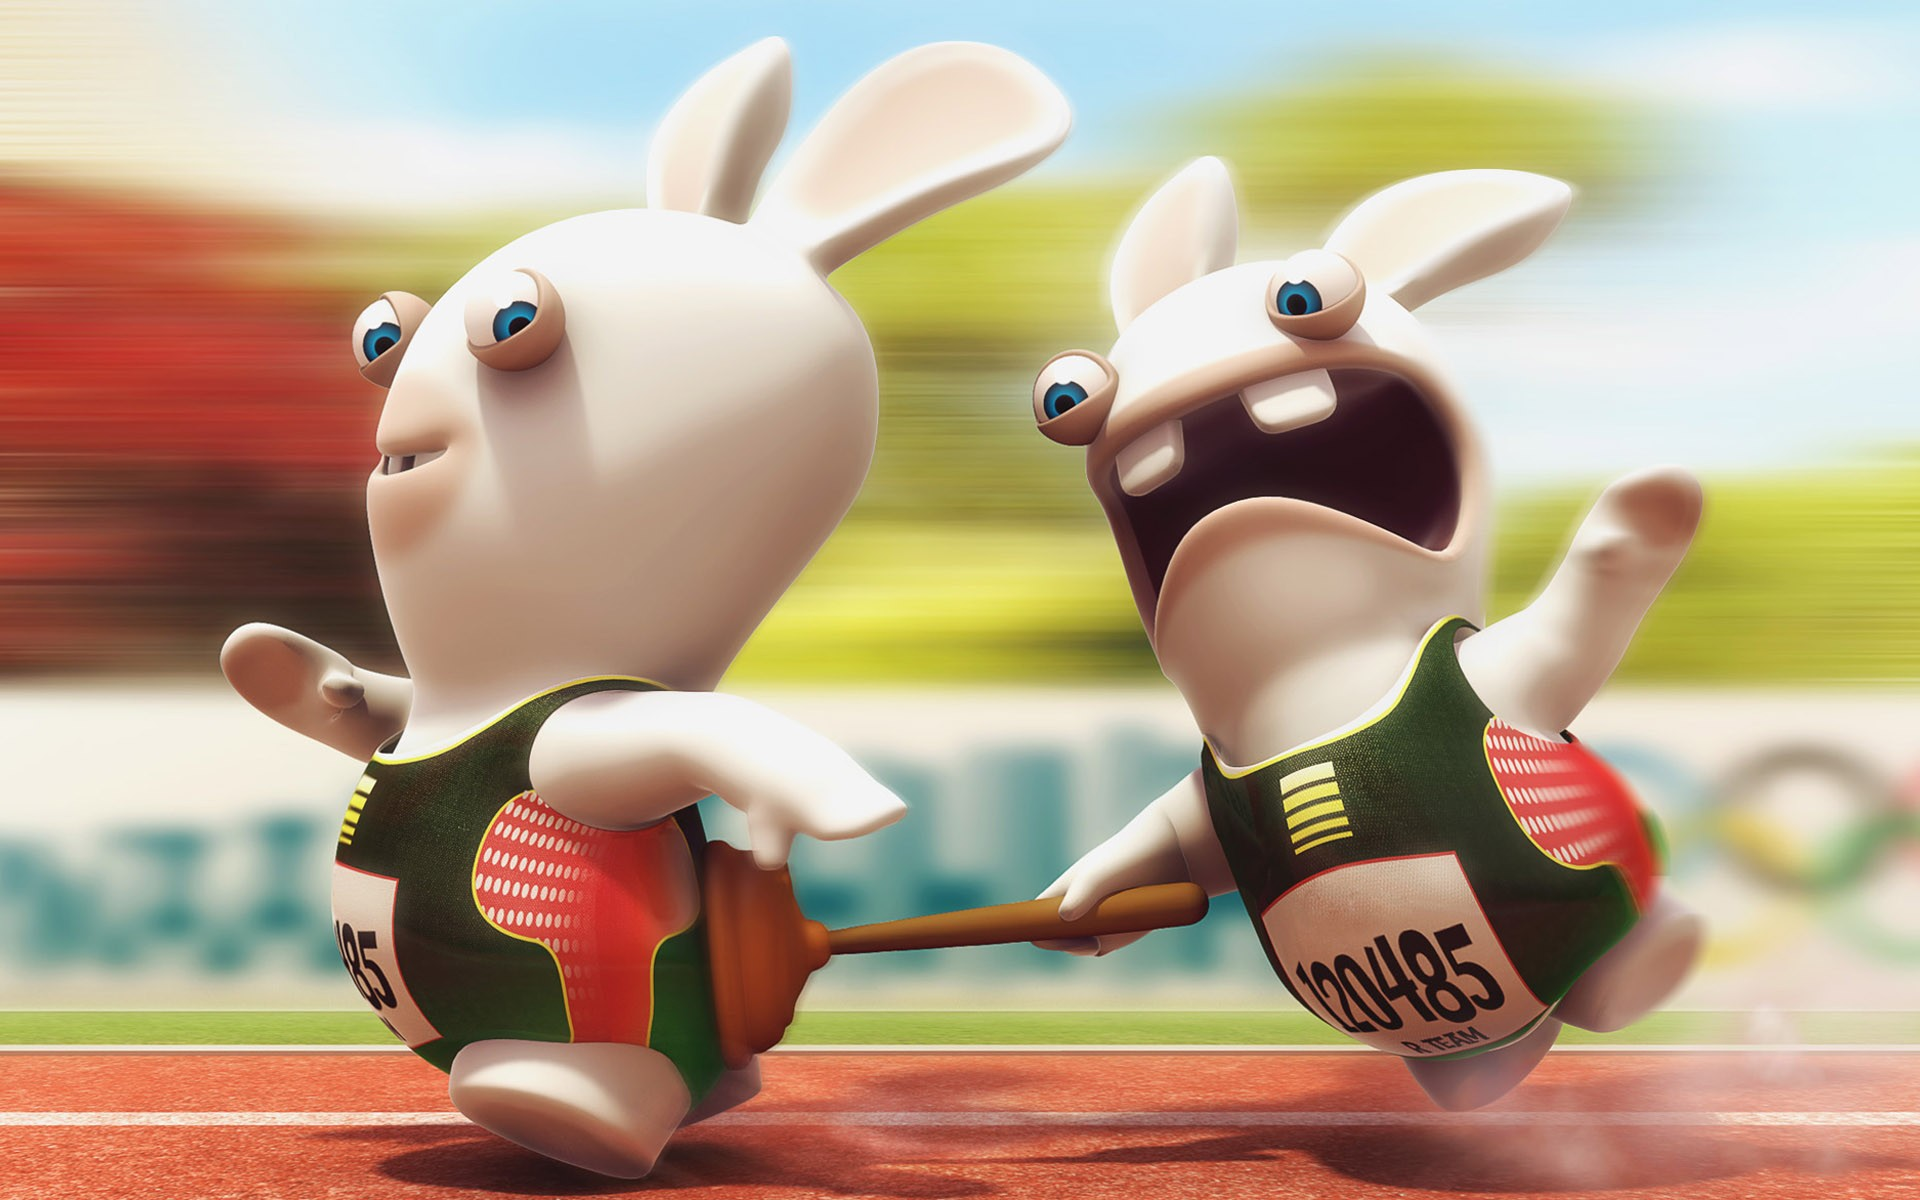 Raving Rabbids graciosas - 1920x1200